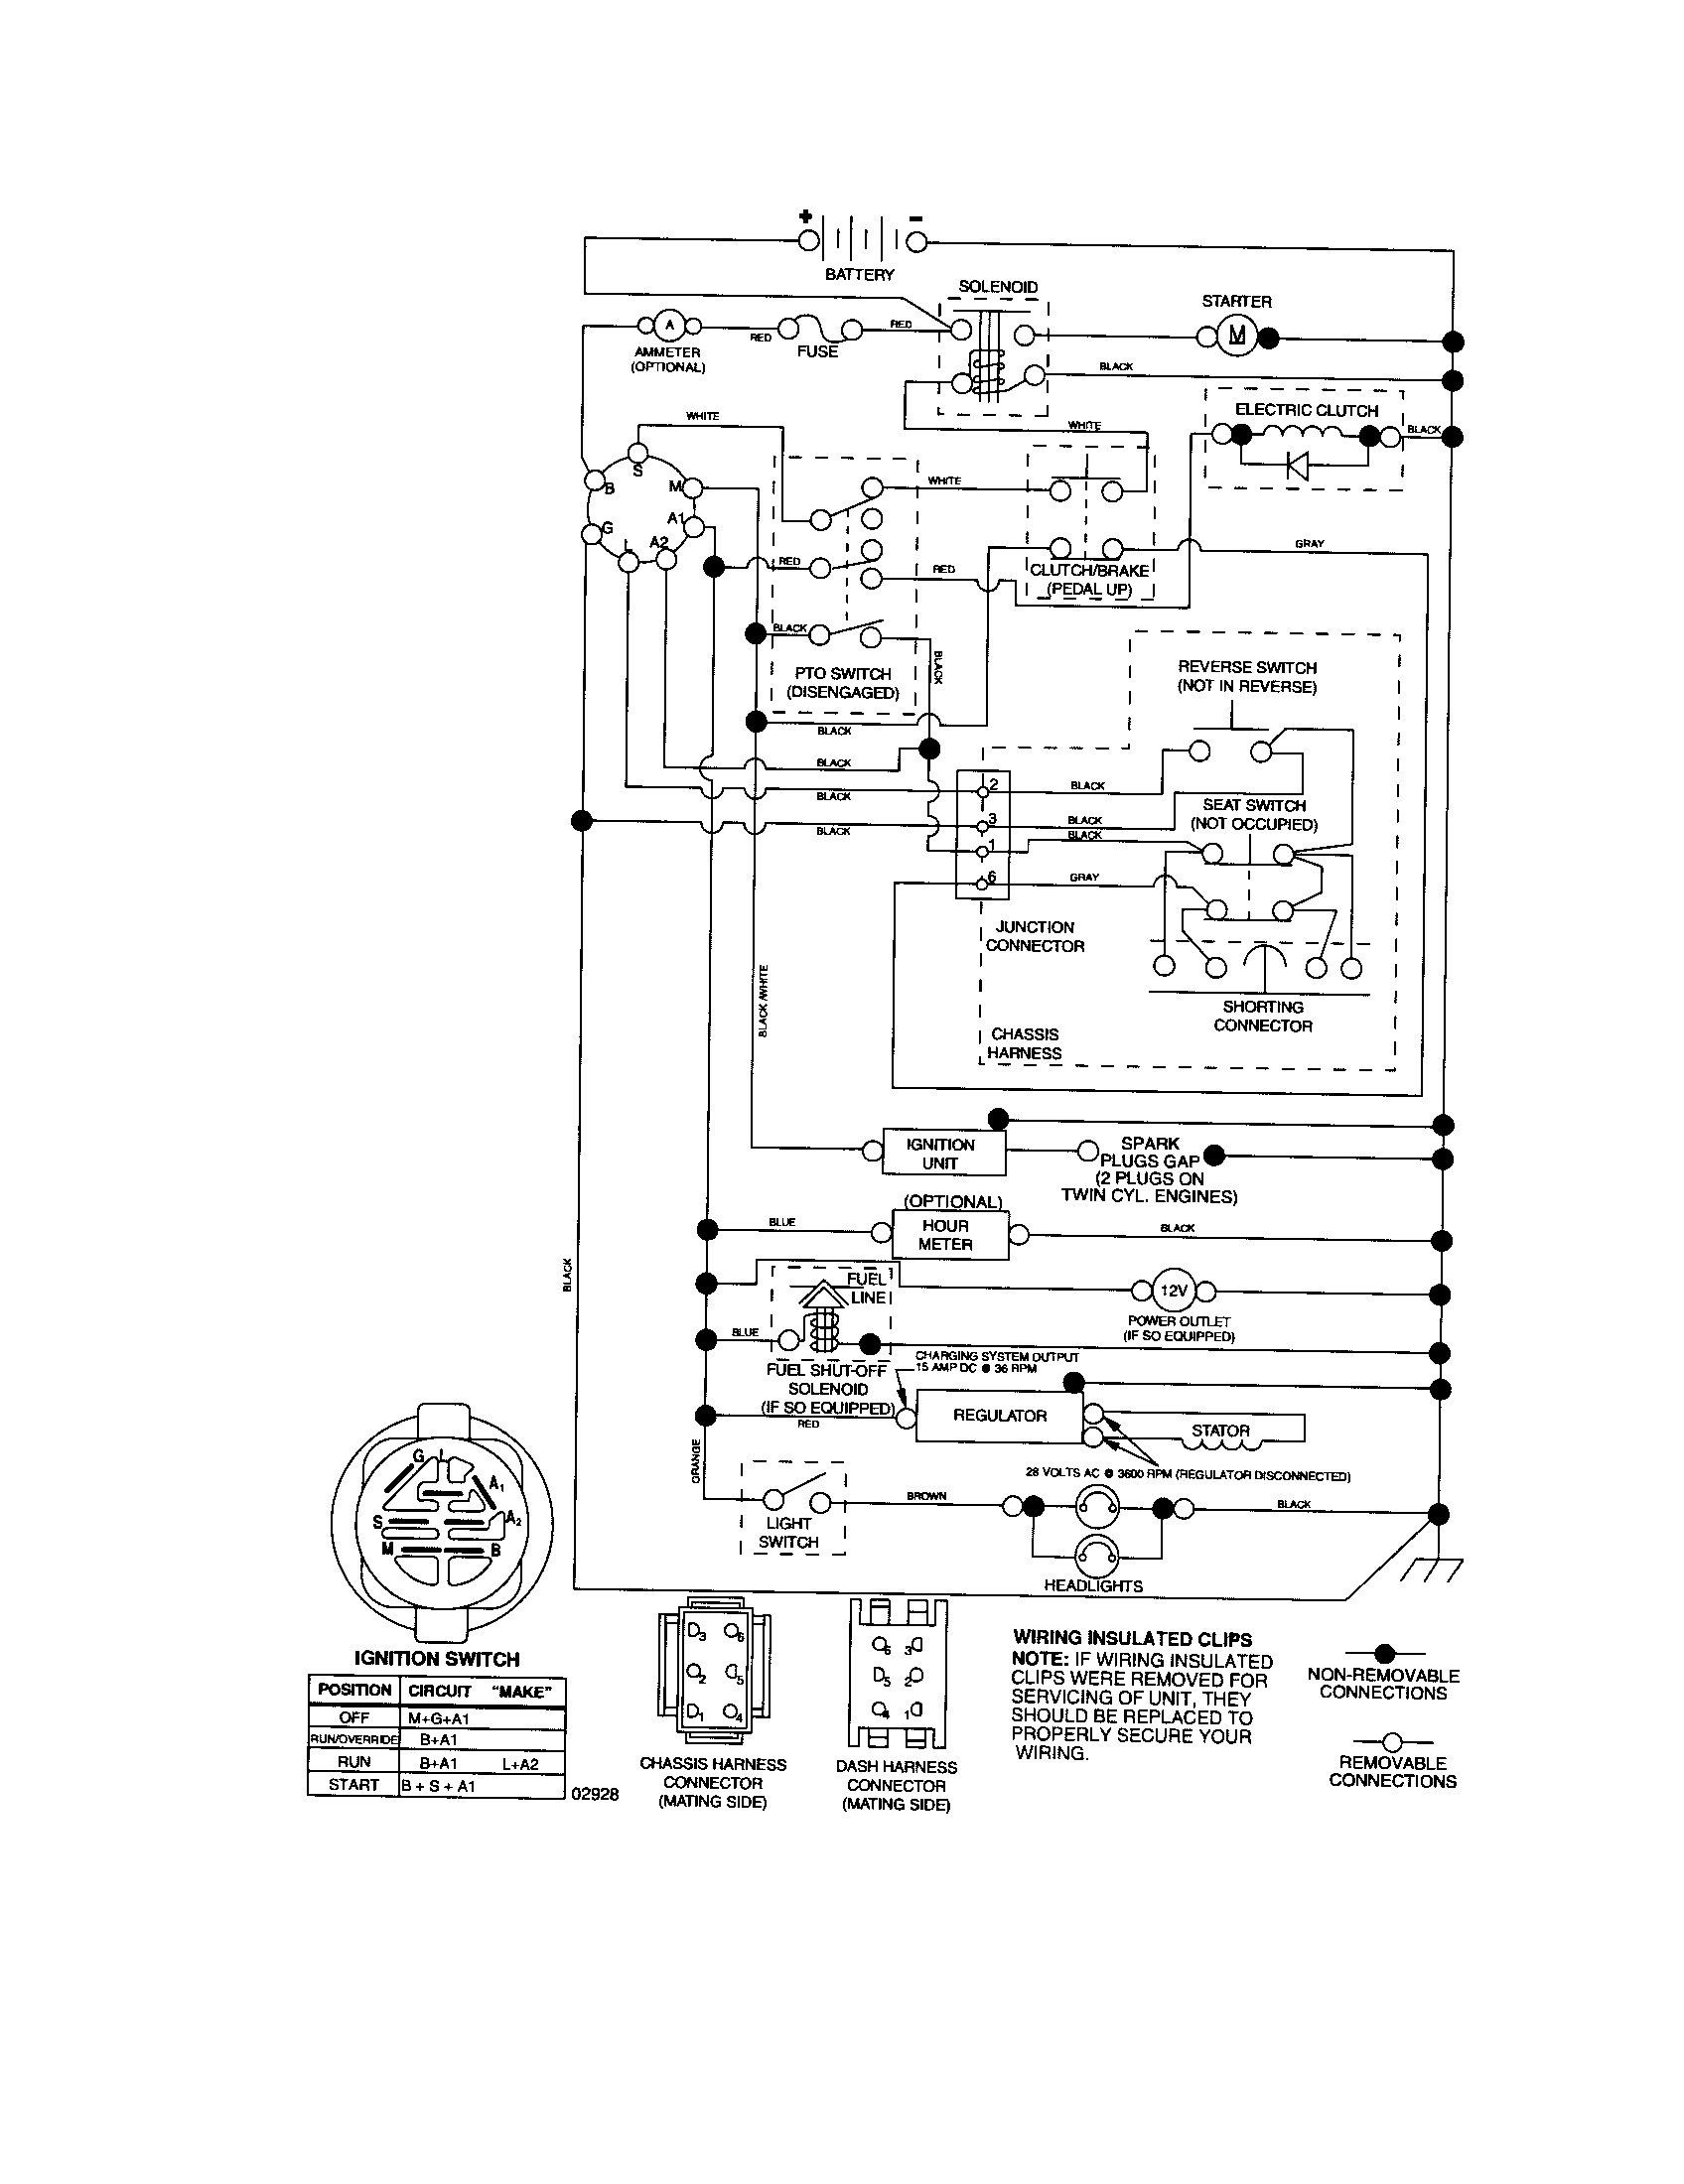 wiring diagram toyota landcruiser 100 series